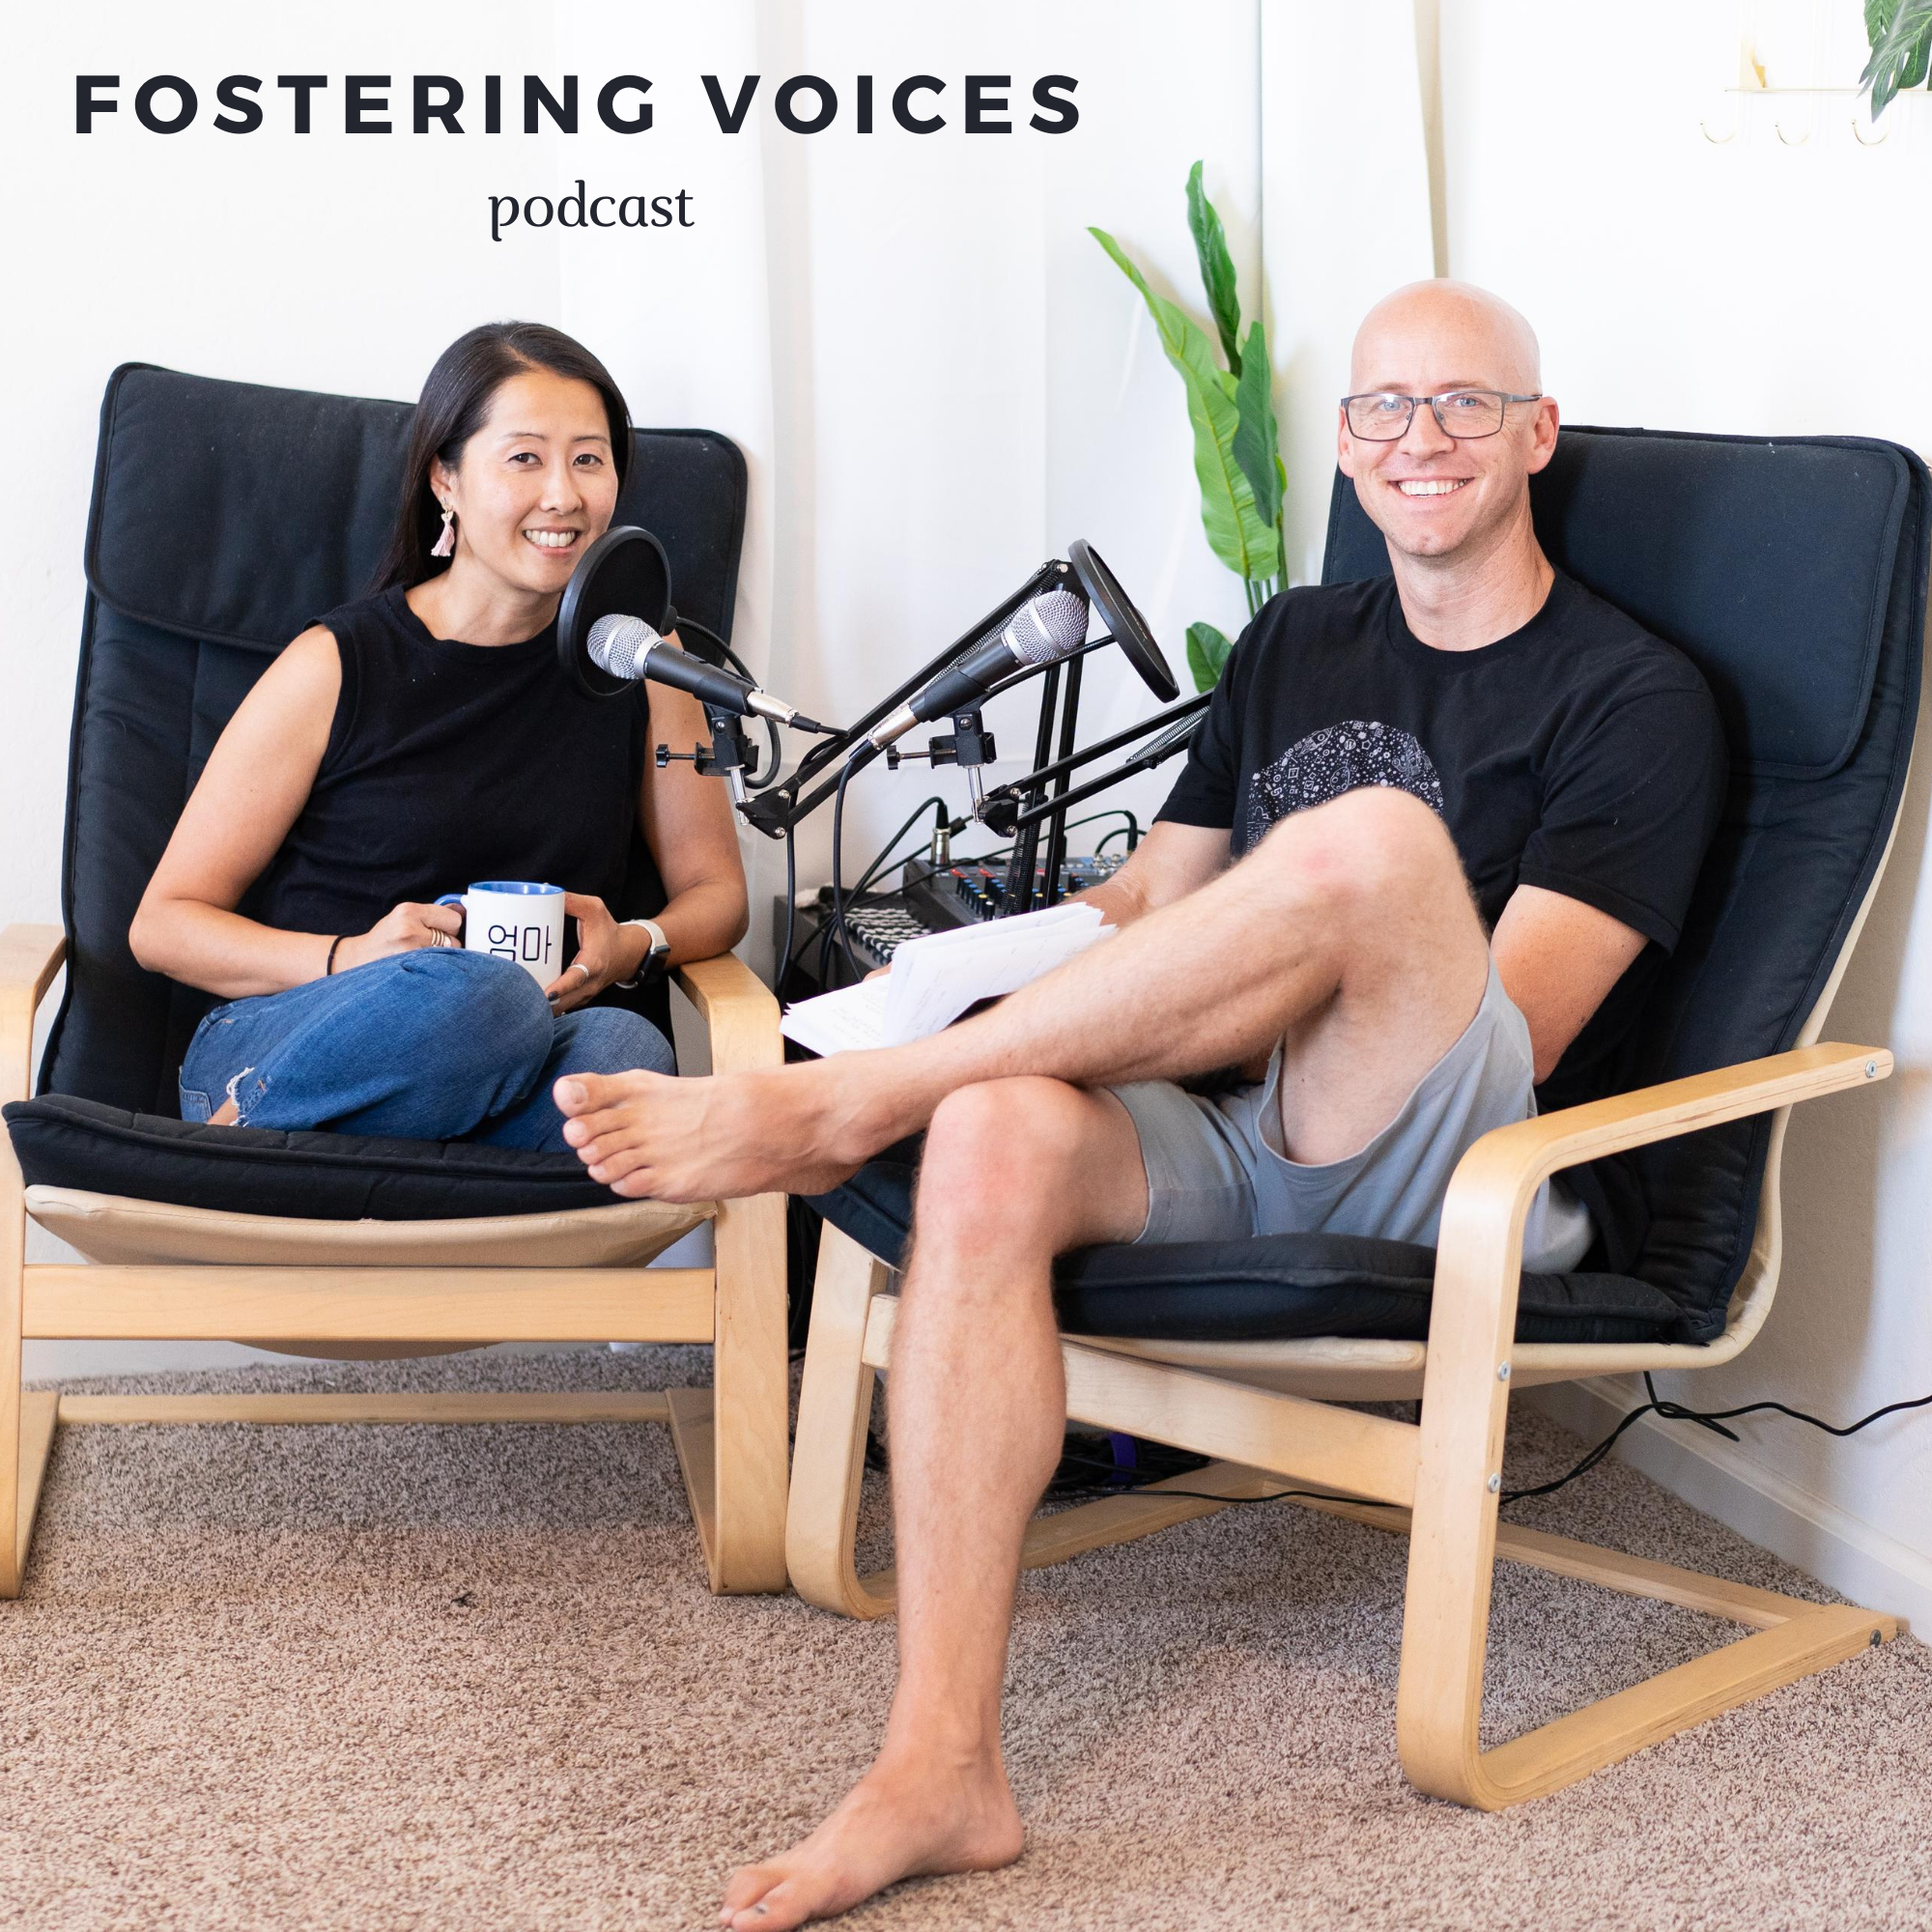 Episode 87: Part 2 of Interview with Former Foster Youth show art